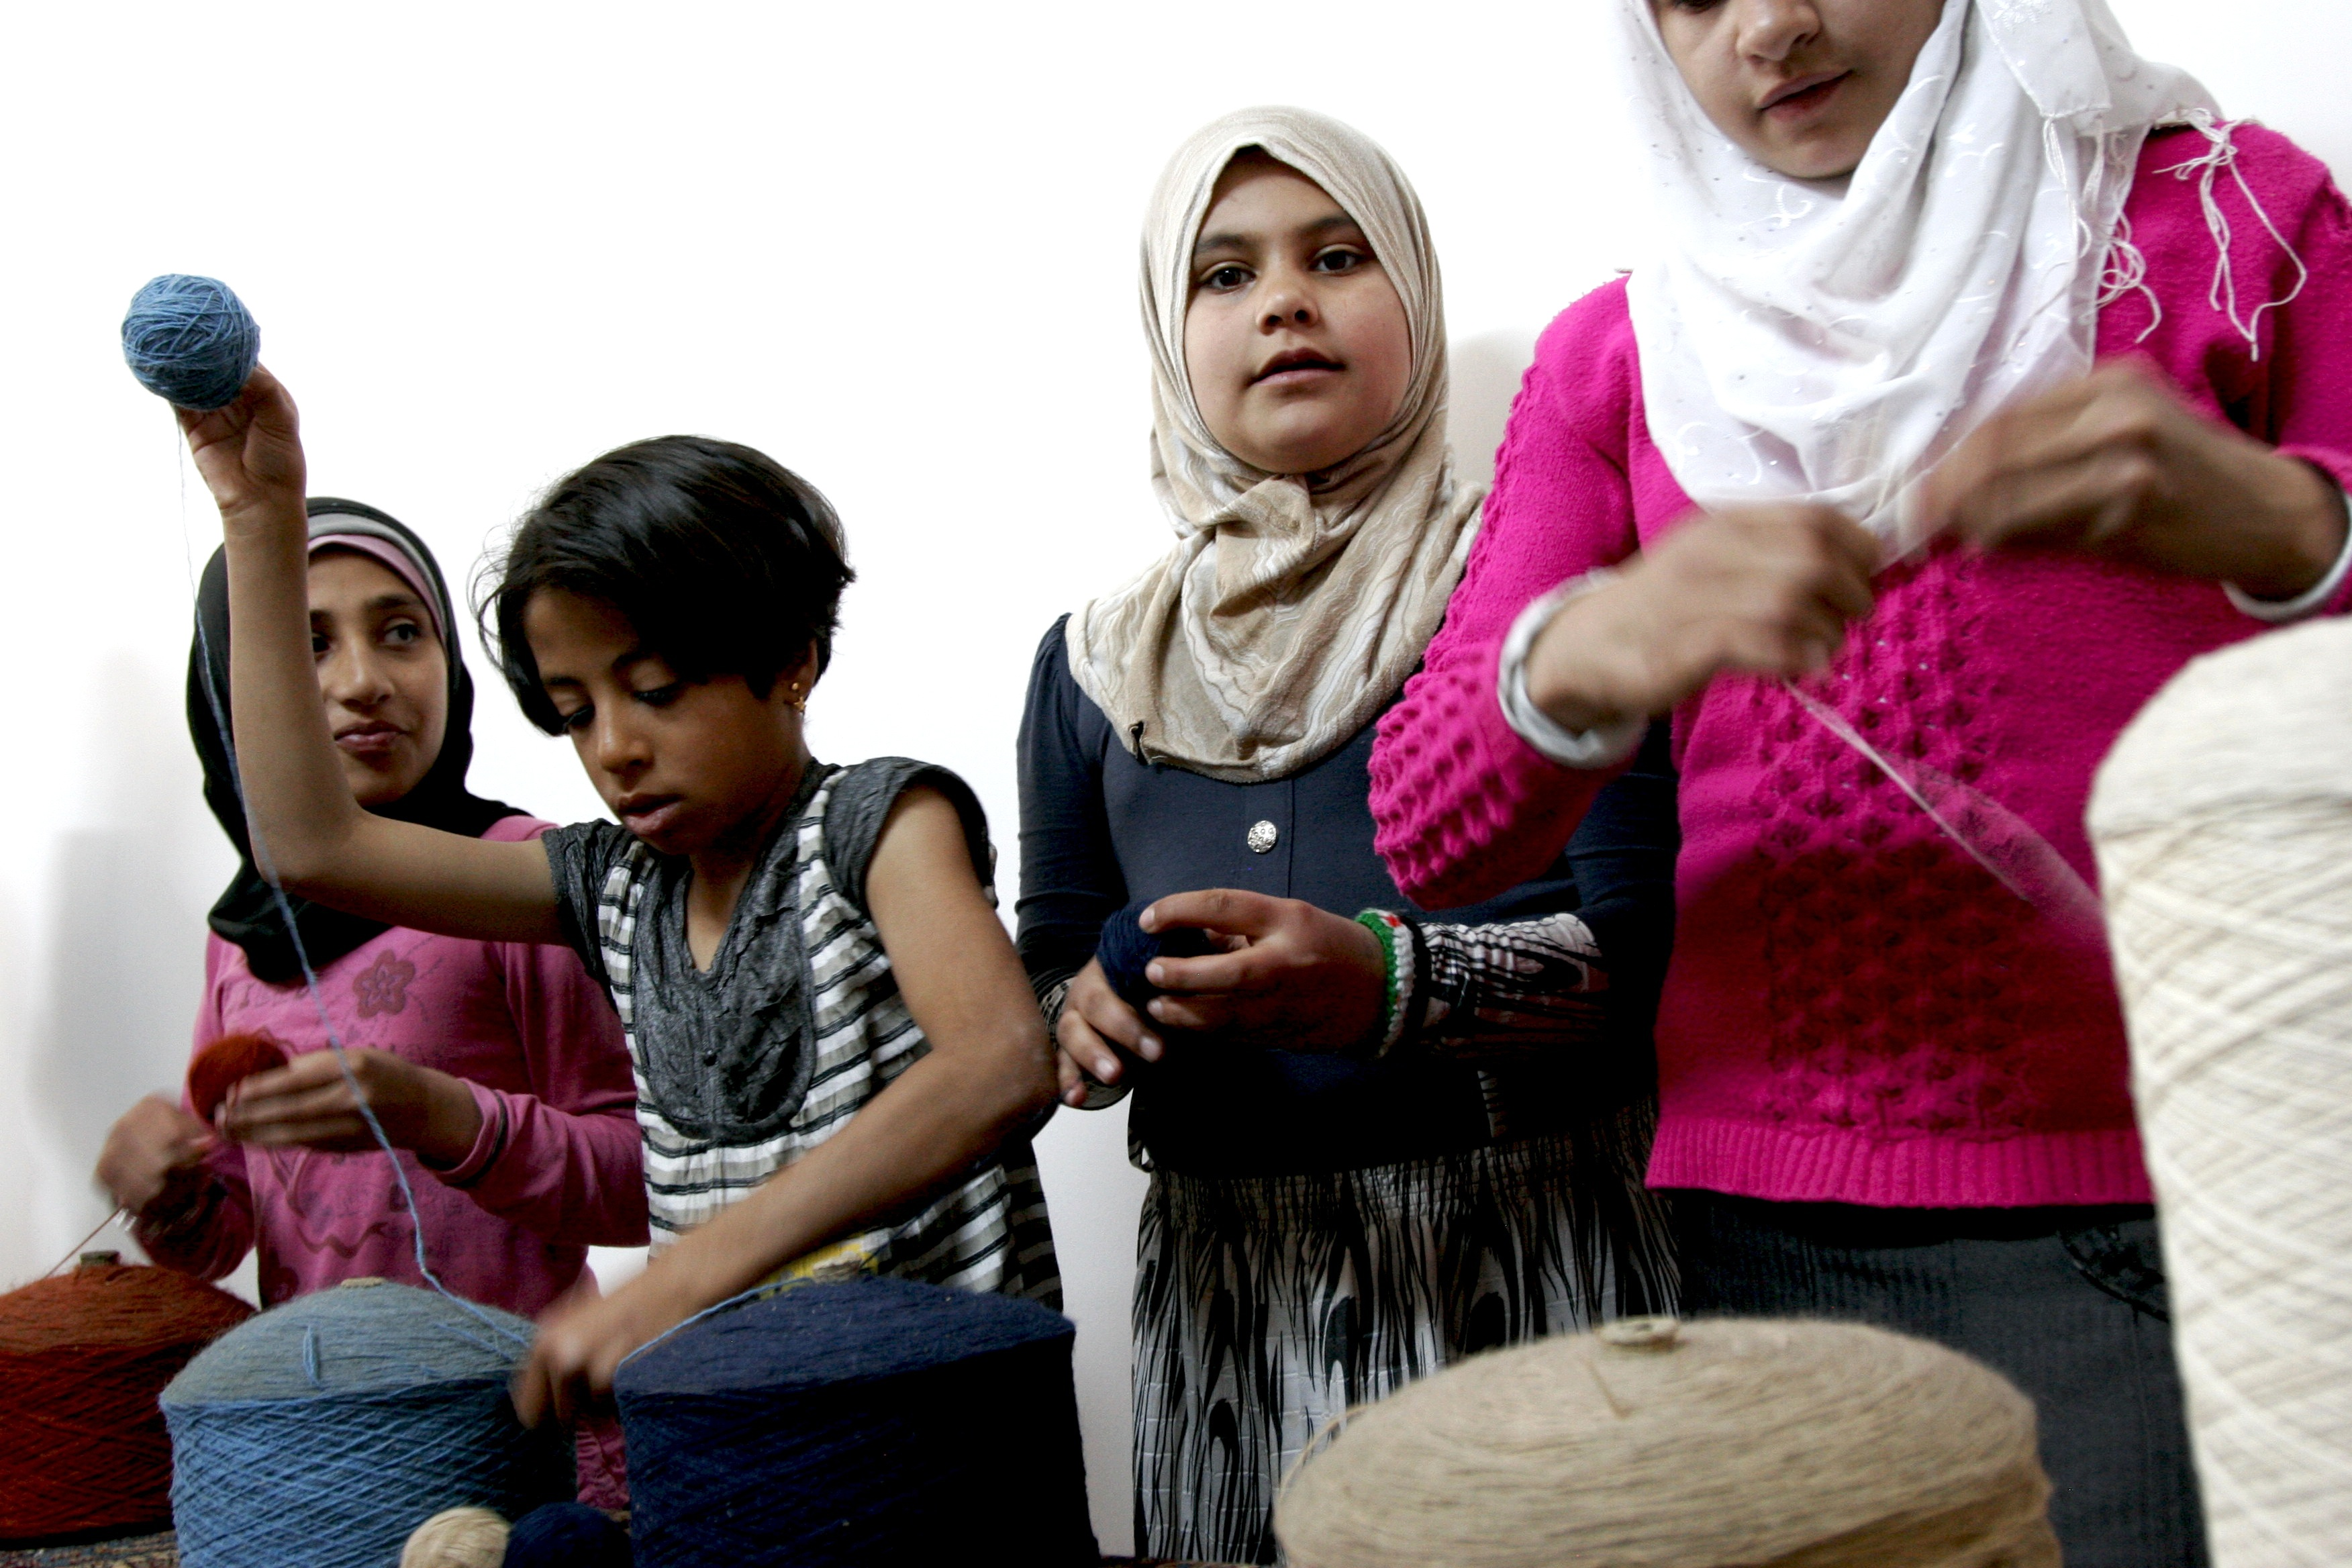 Syrian girls spool yarn for weaving into rugs in a women's-only space at Nizip Camp for Syrian refugees in southern Turkey